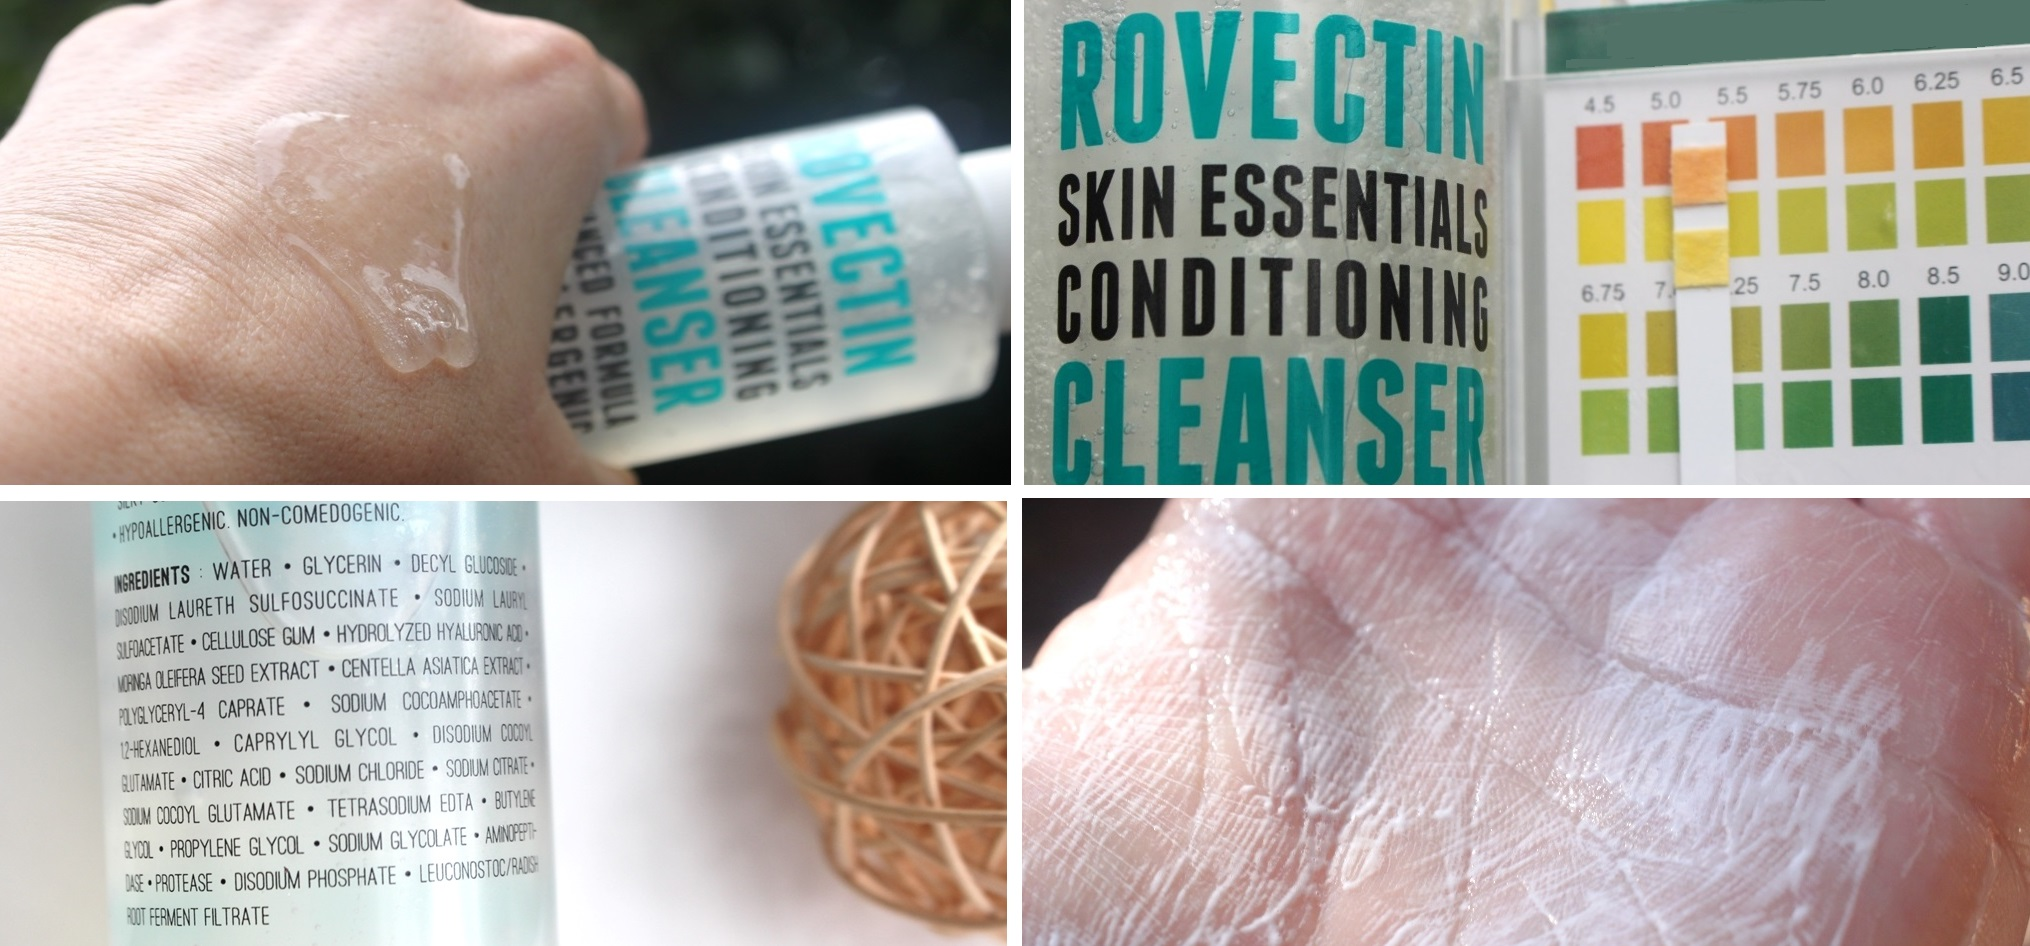 Style Korean Rovectin Set - Conditioning Cleanser texture, pH reading, ingredients and microfoam